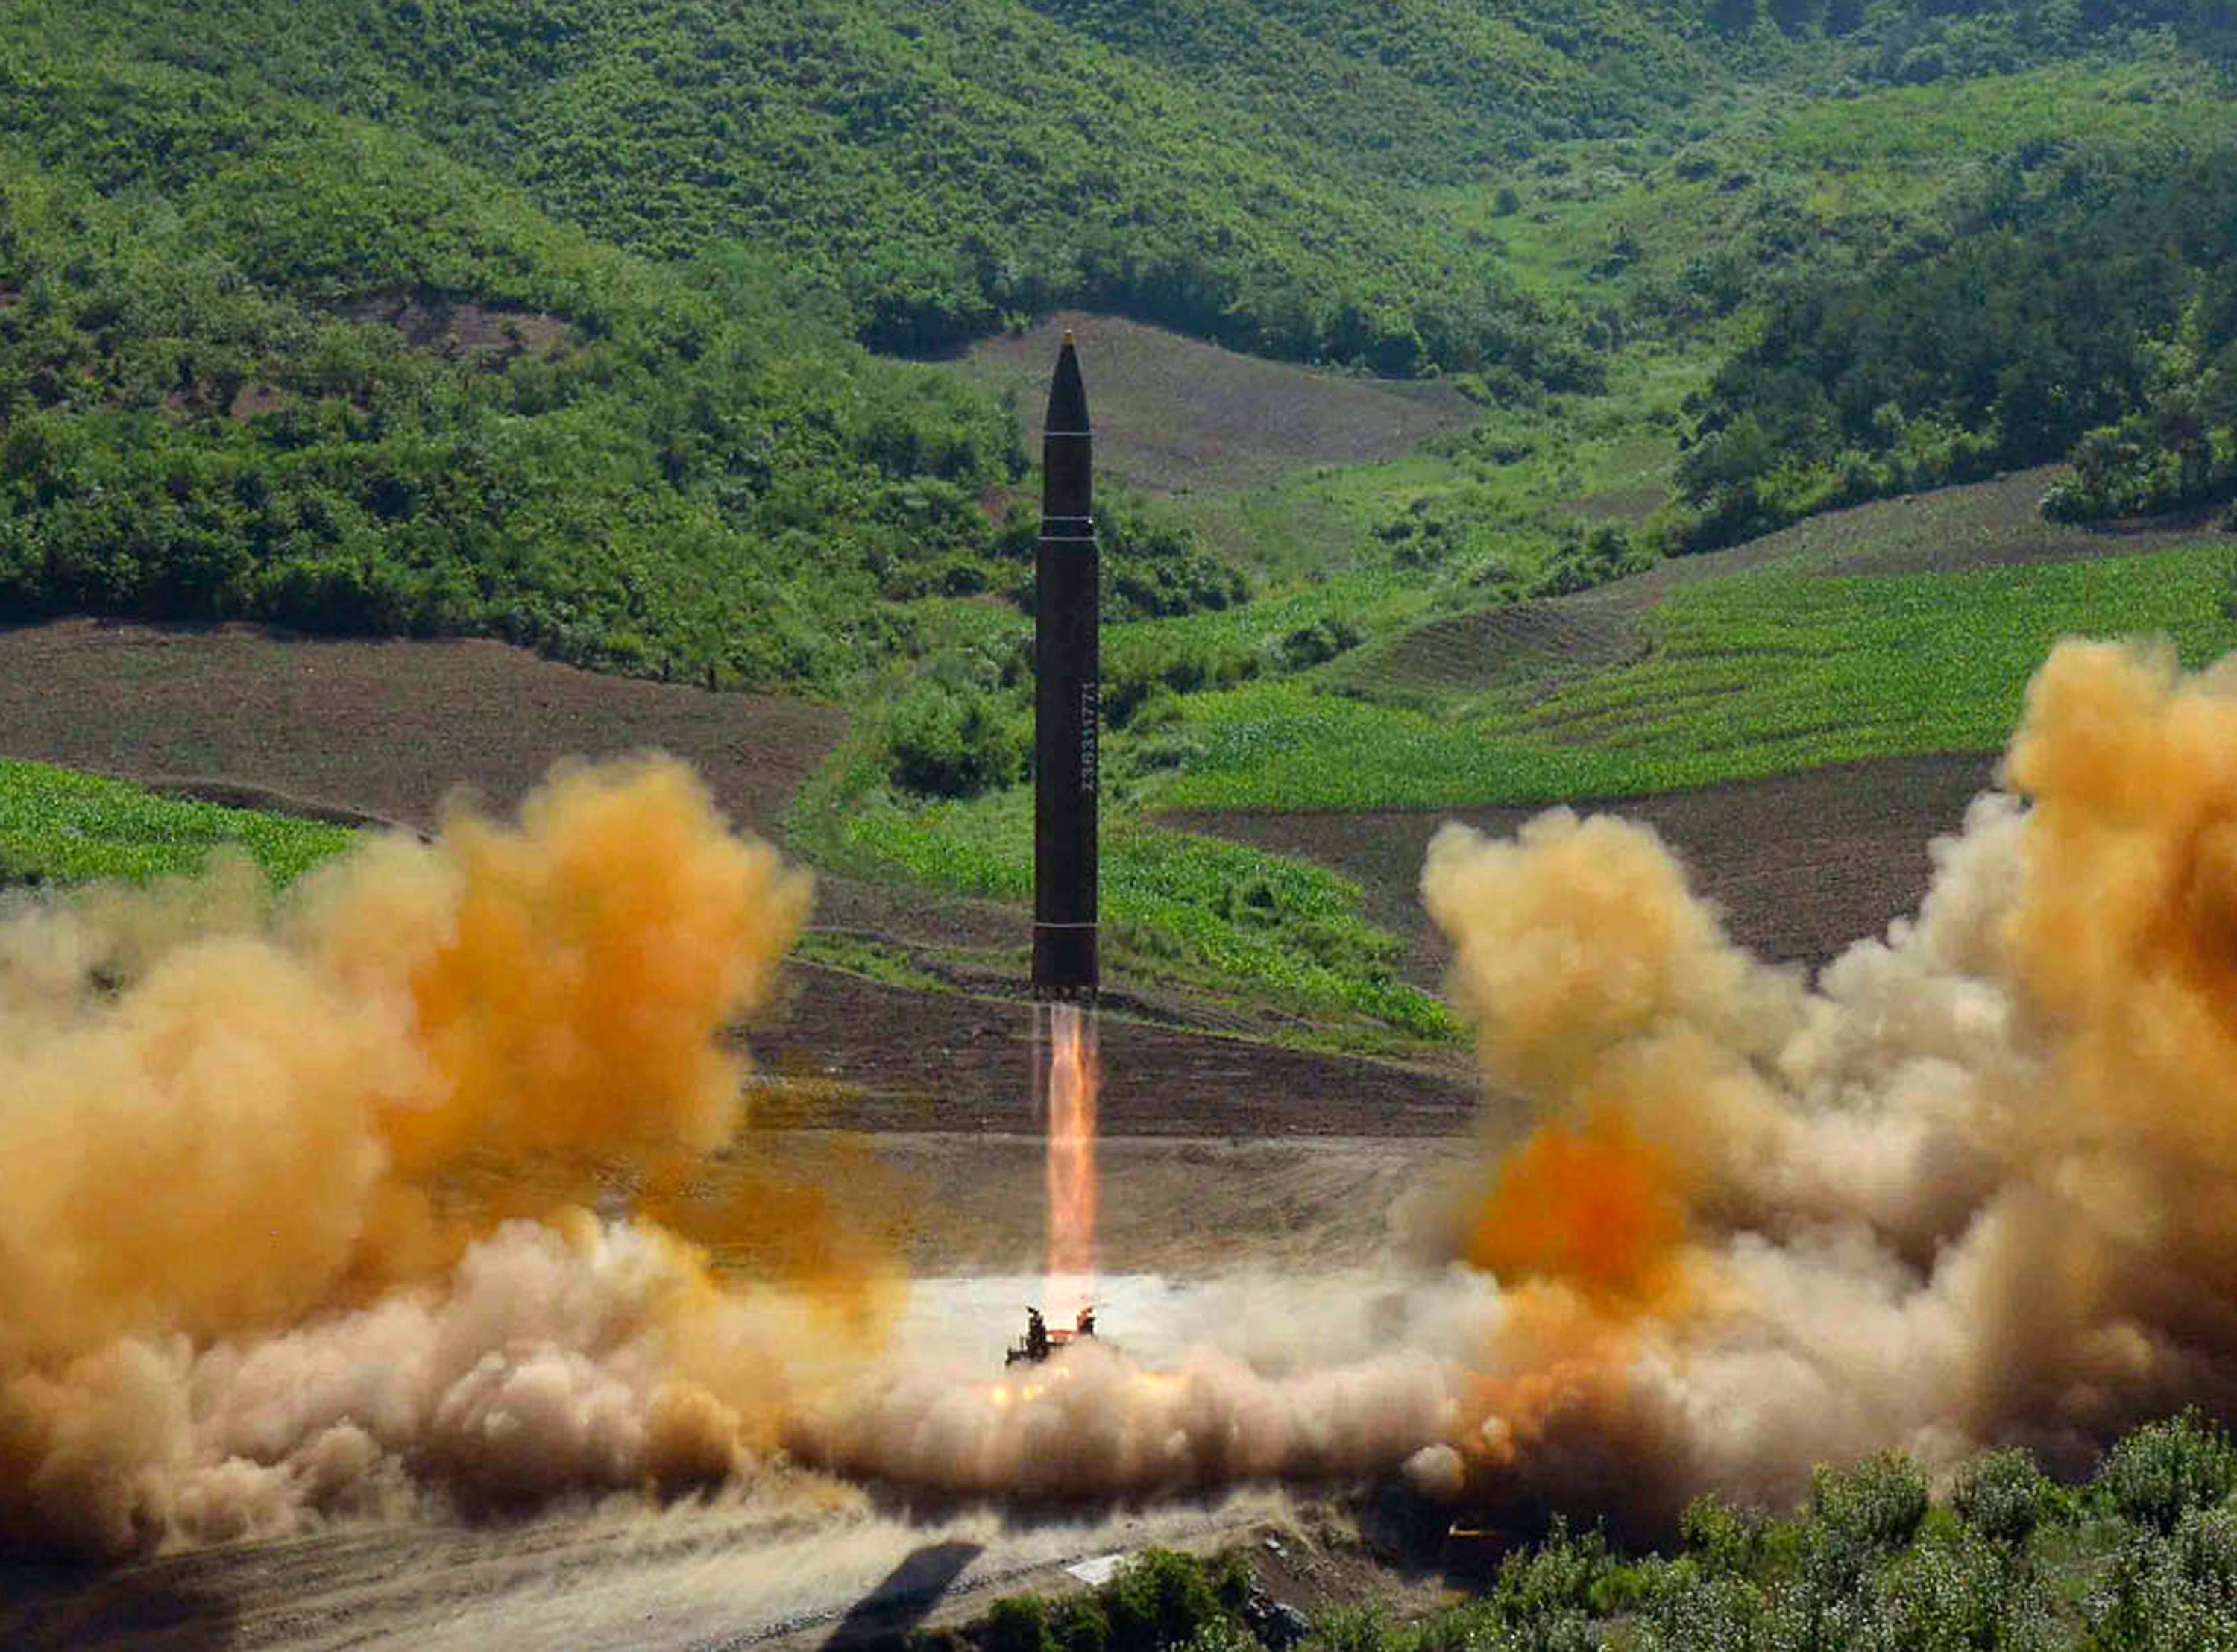 FILE - This file photo distributed by the North Korean government shows what was said to be the launch of a Hwasong-14 intercontinental ballistic missile, ICBM, in North Korea's northwest, Tuesday, July 4, 2017. Independent journalists were not given access to cover the event depicted in this photo. No need to duck and cover just yet. U.S. intelligence officials are pretty sure North Korea can put a nuclear warhead on an intercontinental missile that could reach the United States. Experts aren't convinced the bomb could survive the flight to America. (Korean Central News Agency/Korea News Service via AP, File)